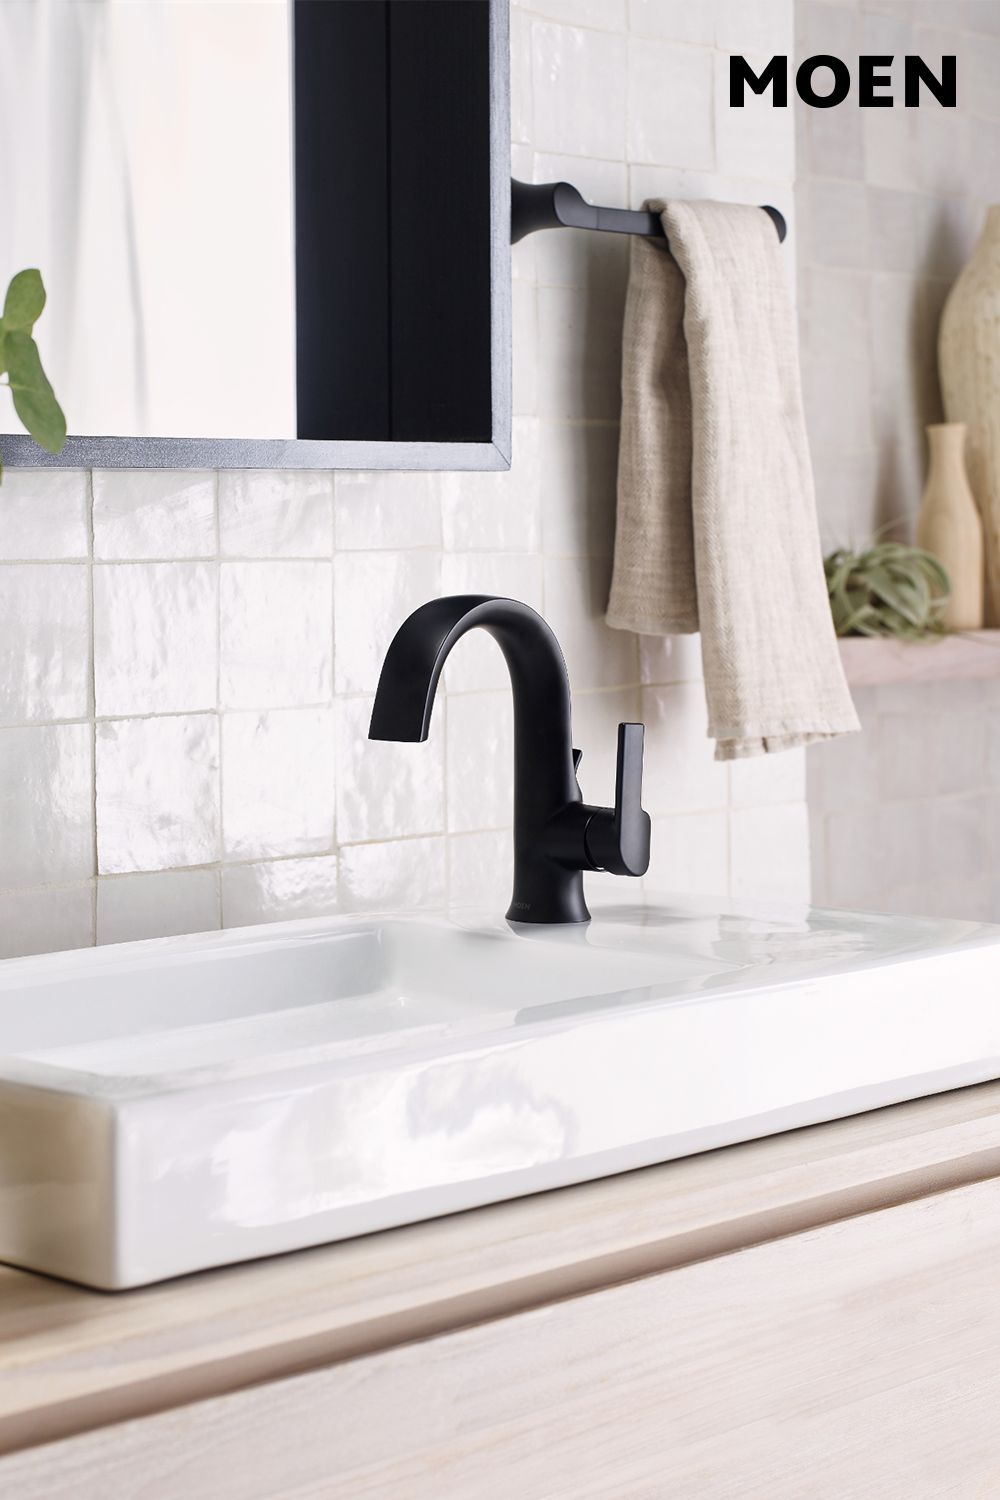 Sleek And Modern Our Doux Faucet Adds Welcomed Contrast To Any Simple Bathroom High Arc Bathroom Faucet Bathroom Faucets Modern Bathroom Remodel